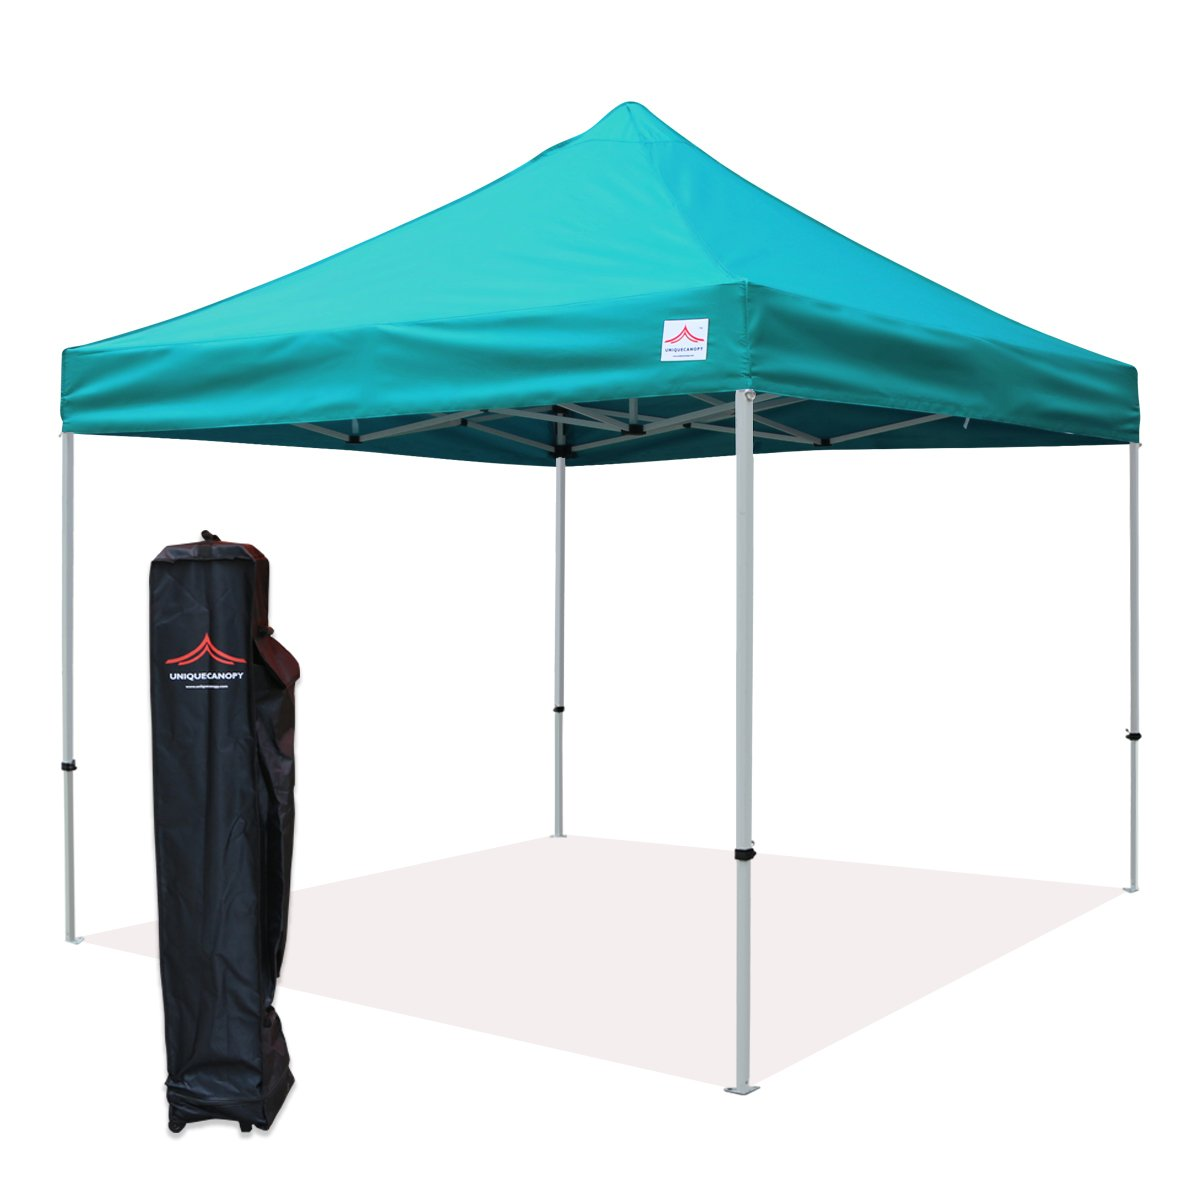 UNIQUECANOPY 10x10 Ez Pop up Canopy Tents for Parties Outdoor Portable Instant Folded Commercial Popup Shelter, with Wheeled Carrying Bag Lake Blue